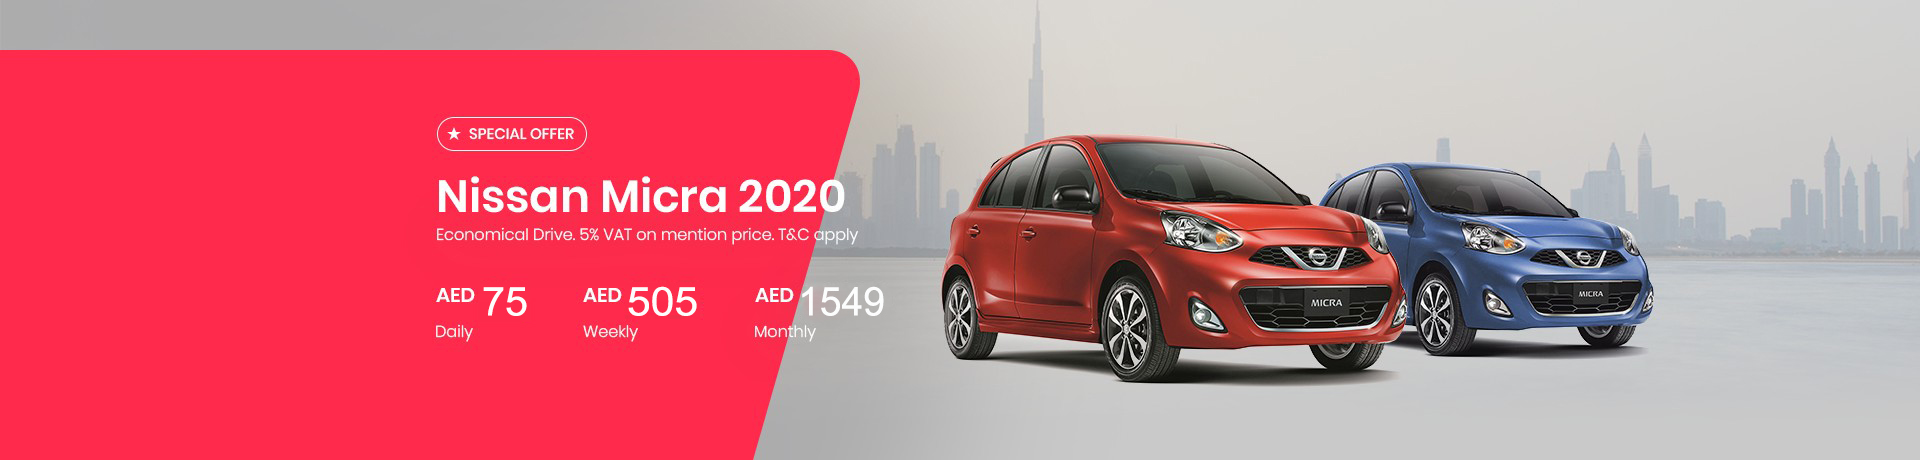 Hire a Nissan Micra 2020 for AED 1249/Month